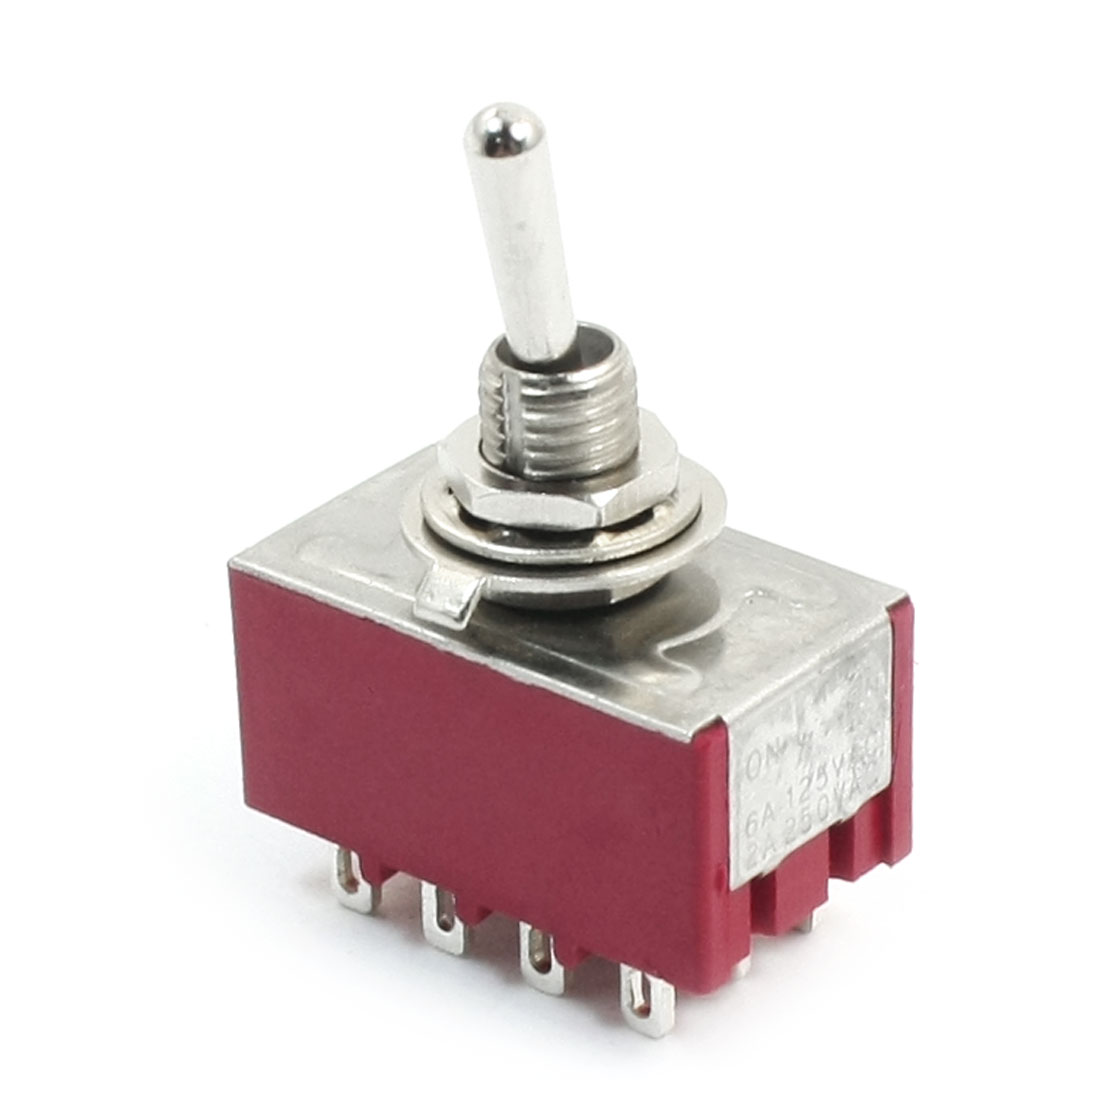 4PDT 2 Positions Latching 12-Terminals Toggle Switch AC250V 2A 125V 6A